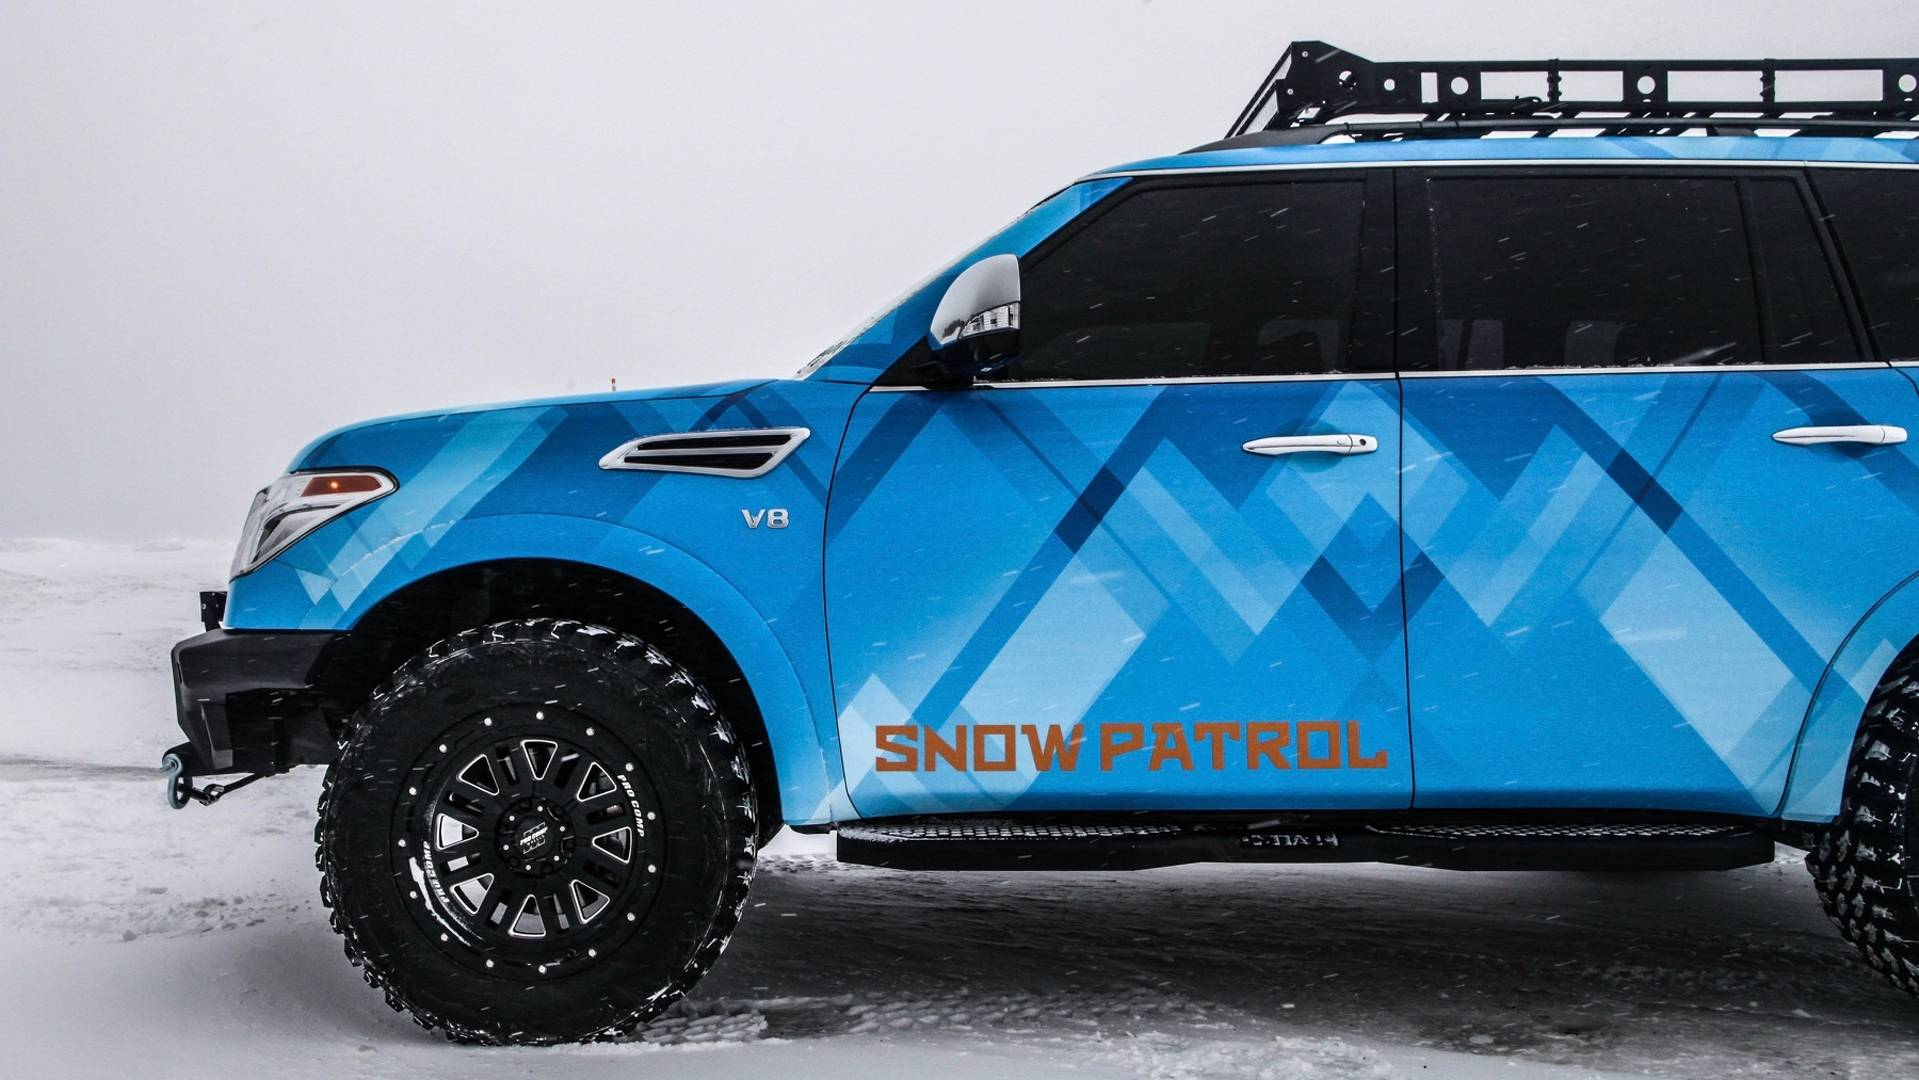 Nissan Armada Snow Patrol Has Nothing To Do With The Band